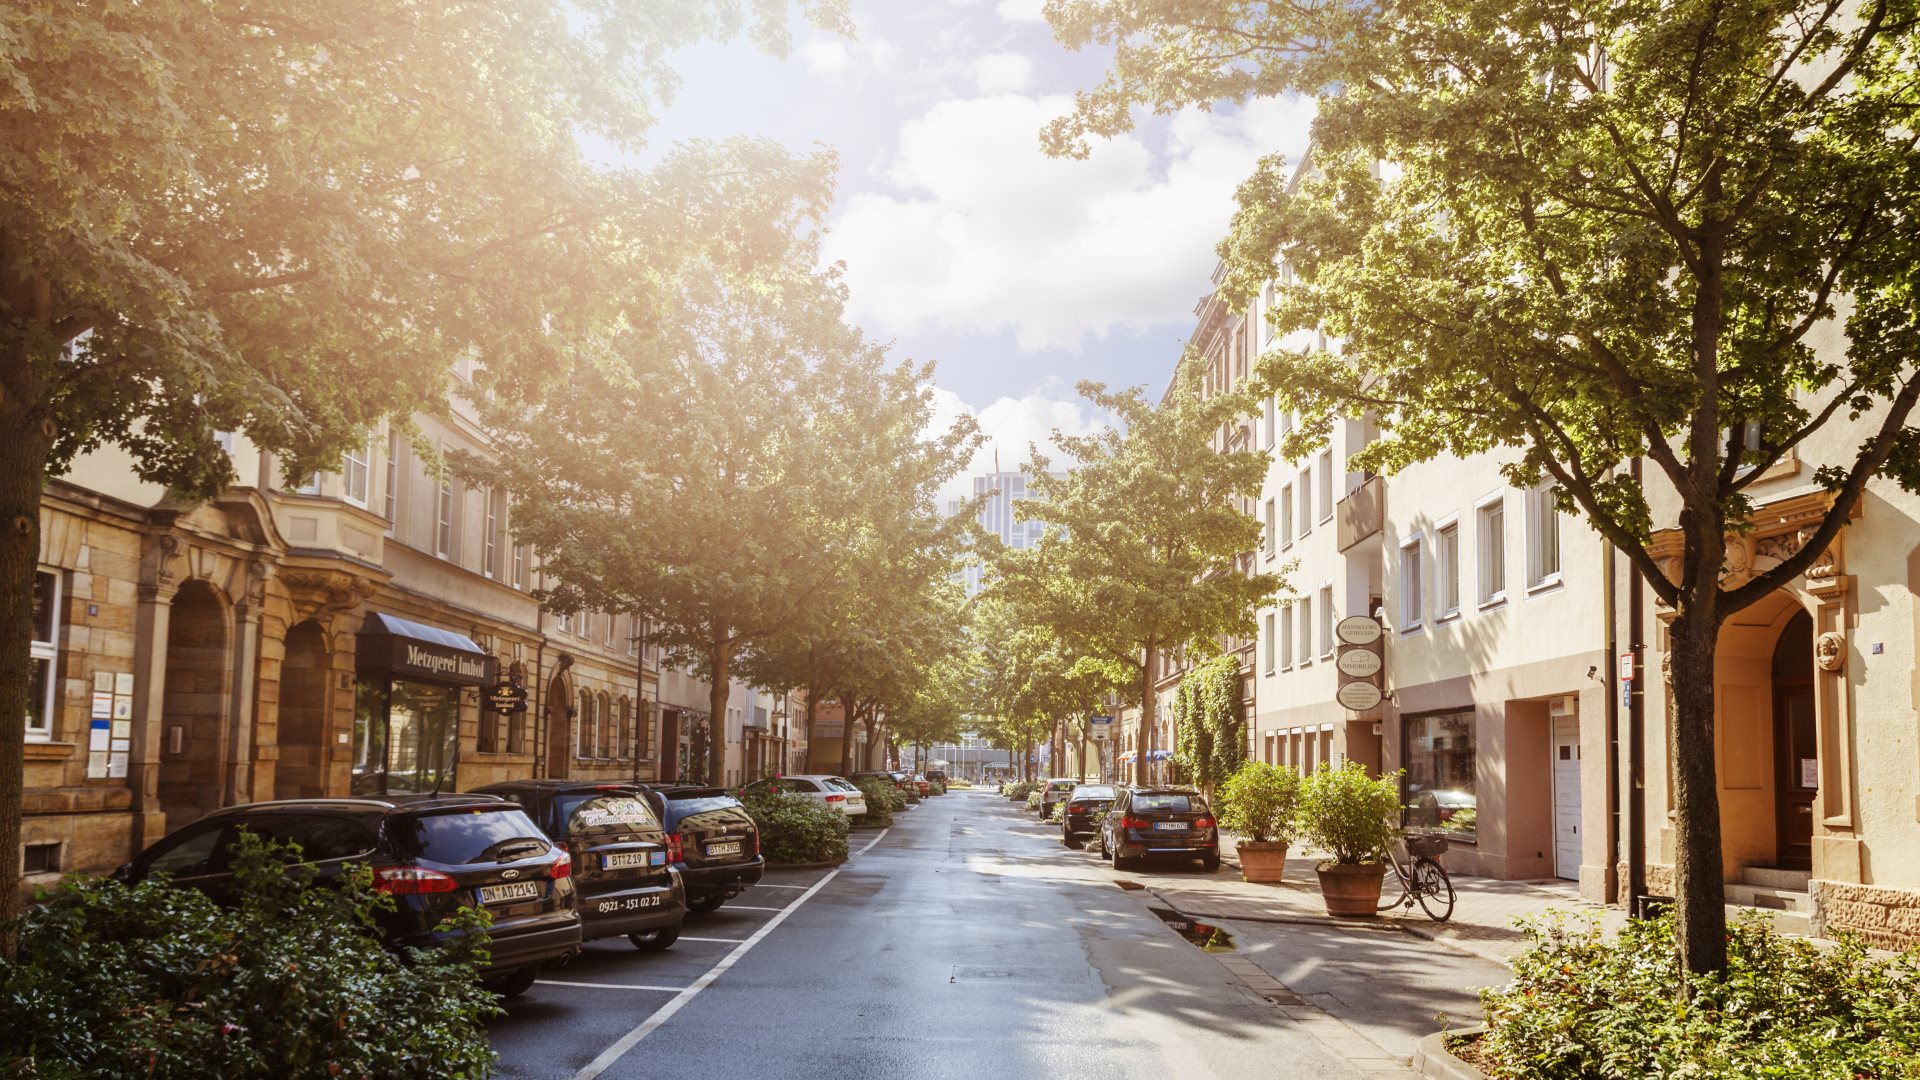 Wallpaper: Sunny on the streets of Bayreuth